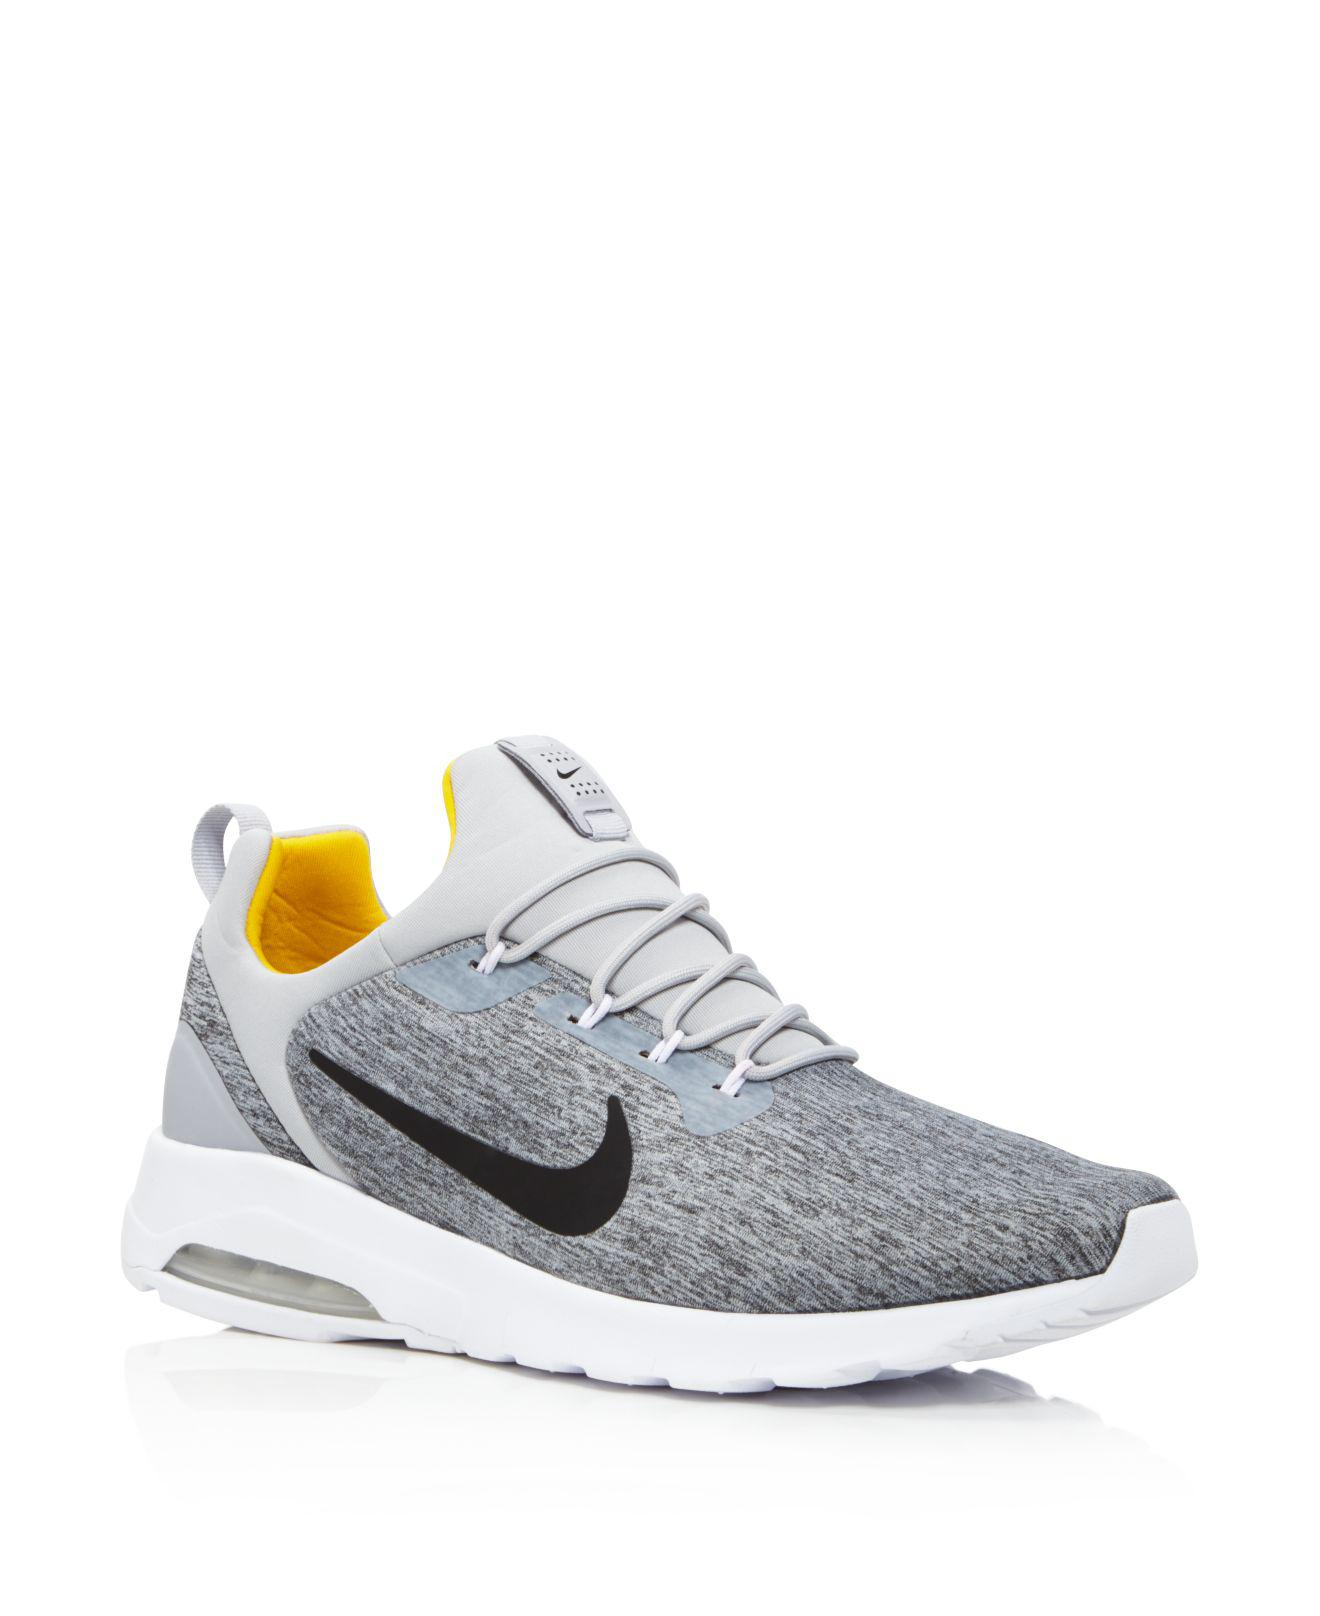 da2dfc9f1a56 Lyst - Nike Men s Air Max Motion Racer Sneakers in Gray for Men